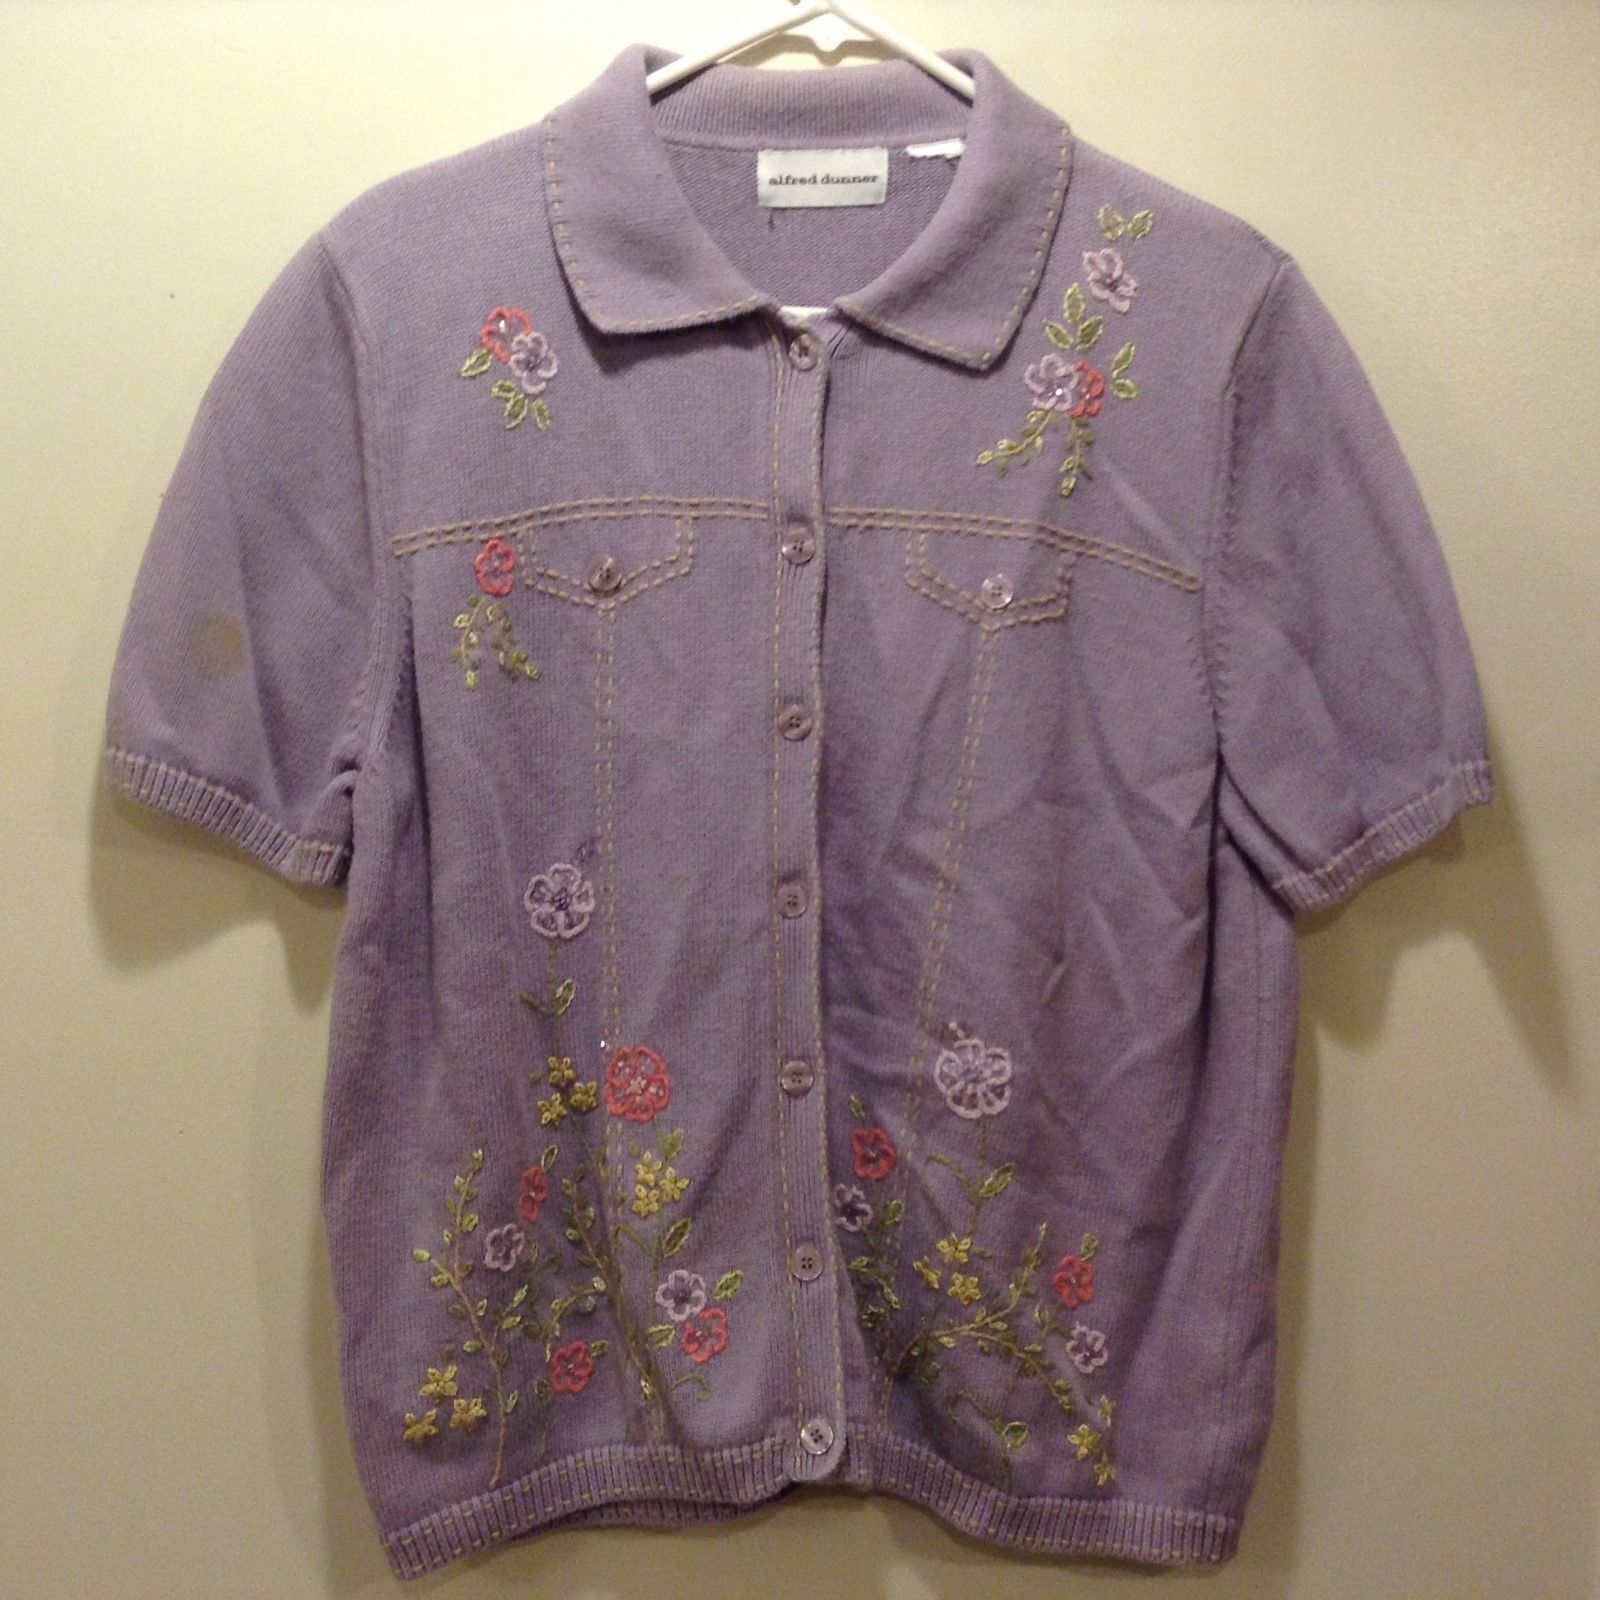 Alfred Dunner Ladies Embroidered Short Sleeve Lavender Sweater